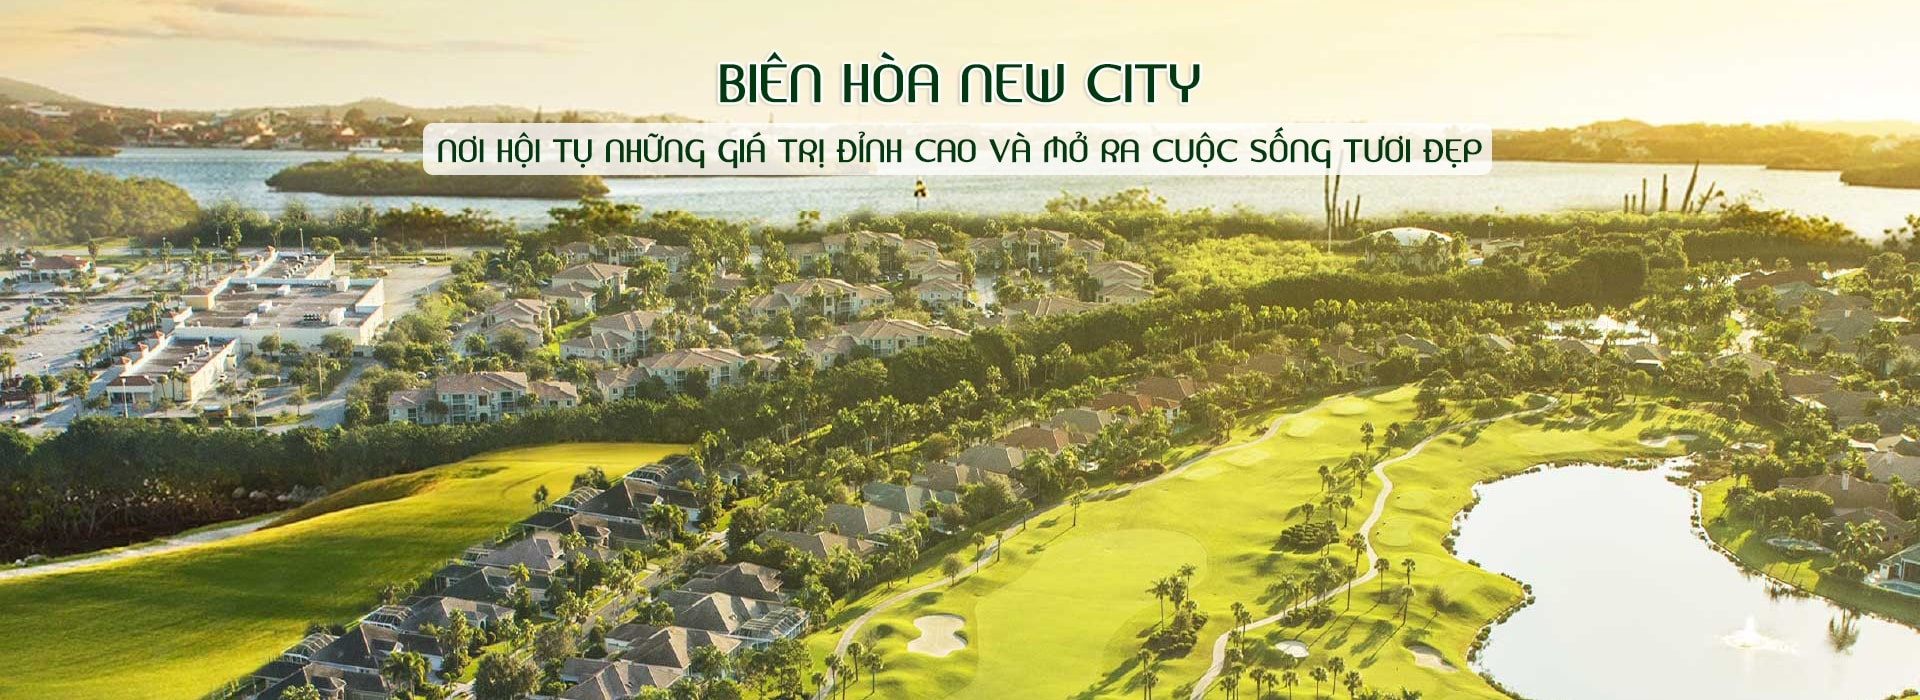 dat-nen-bien-hoa-new-city